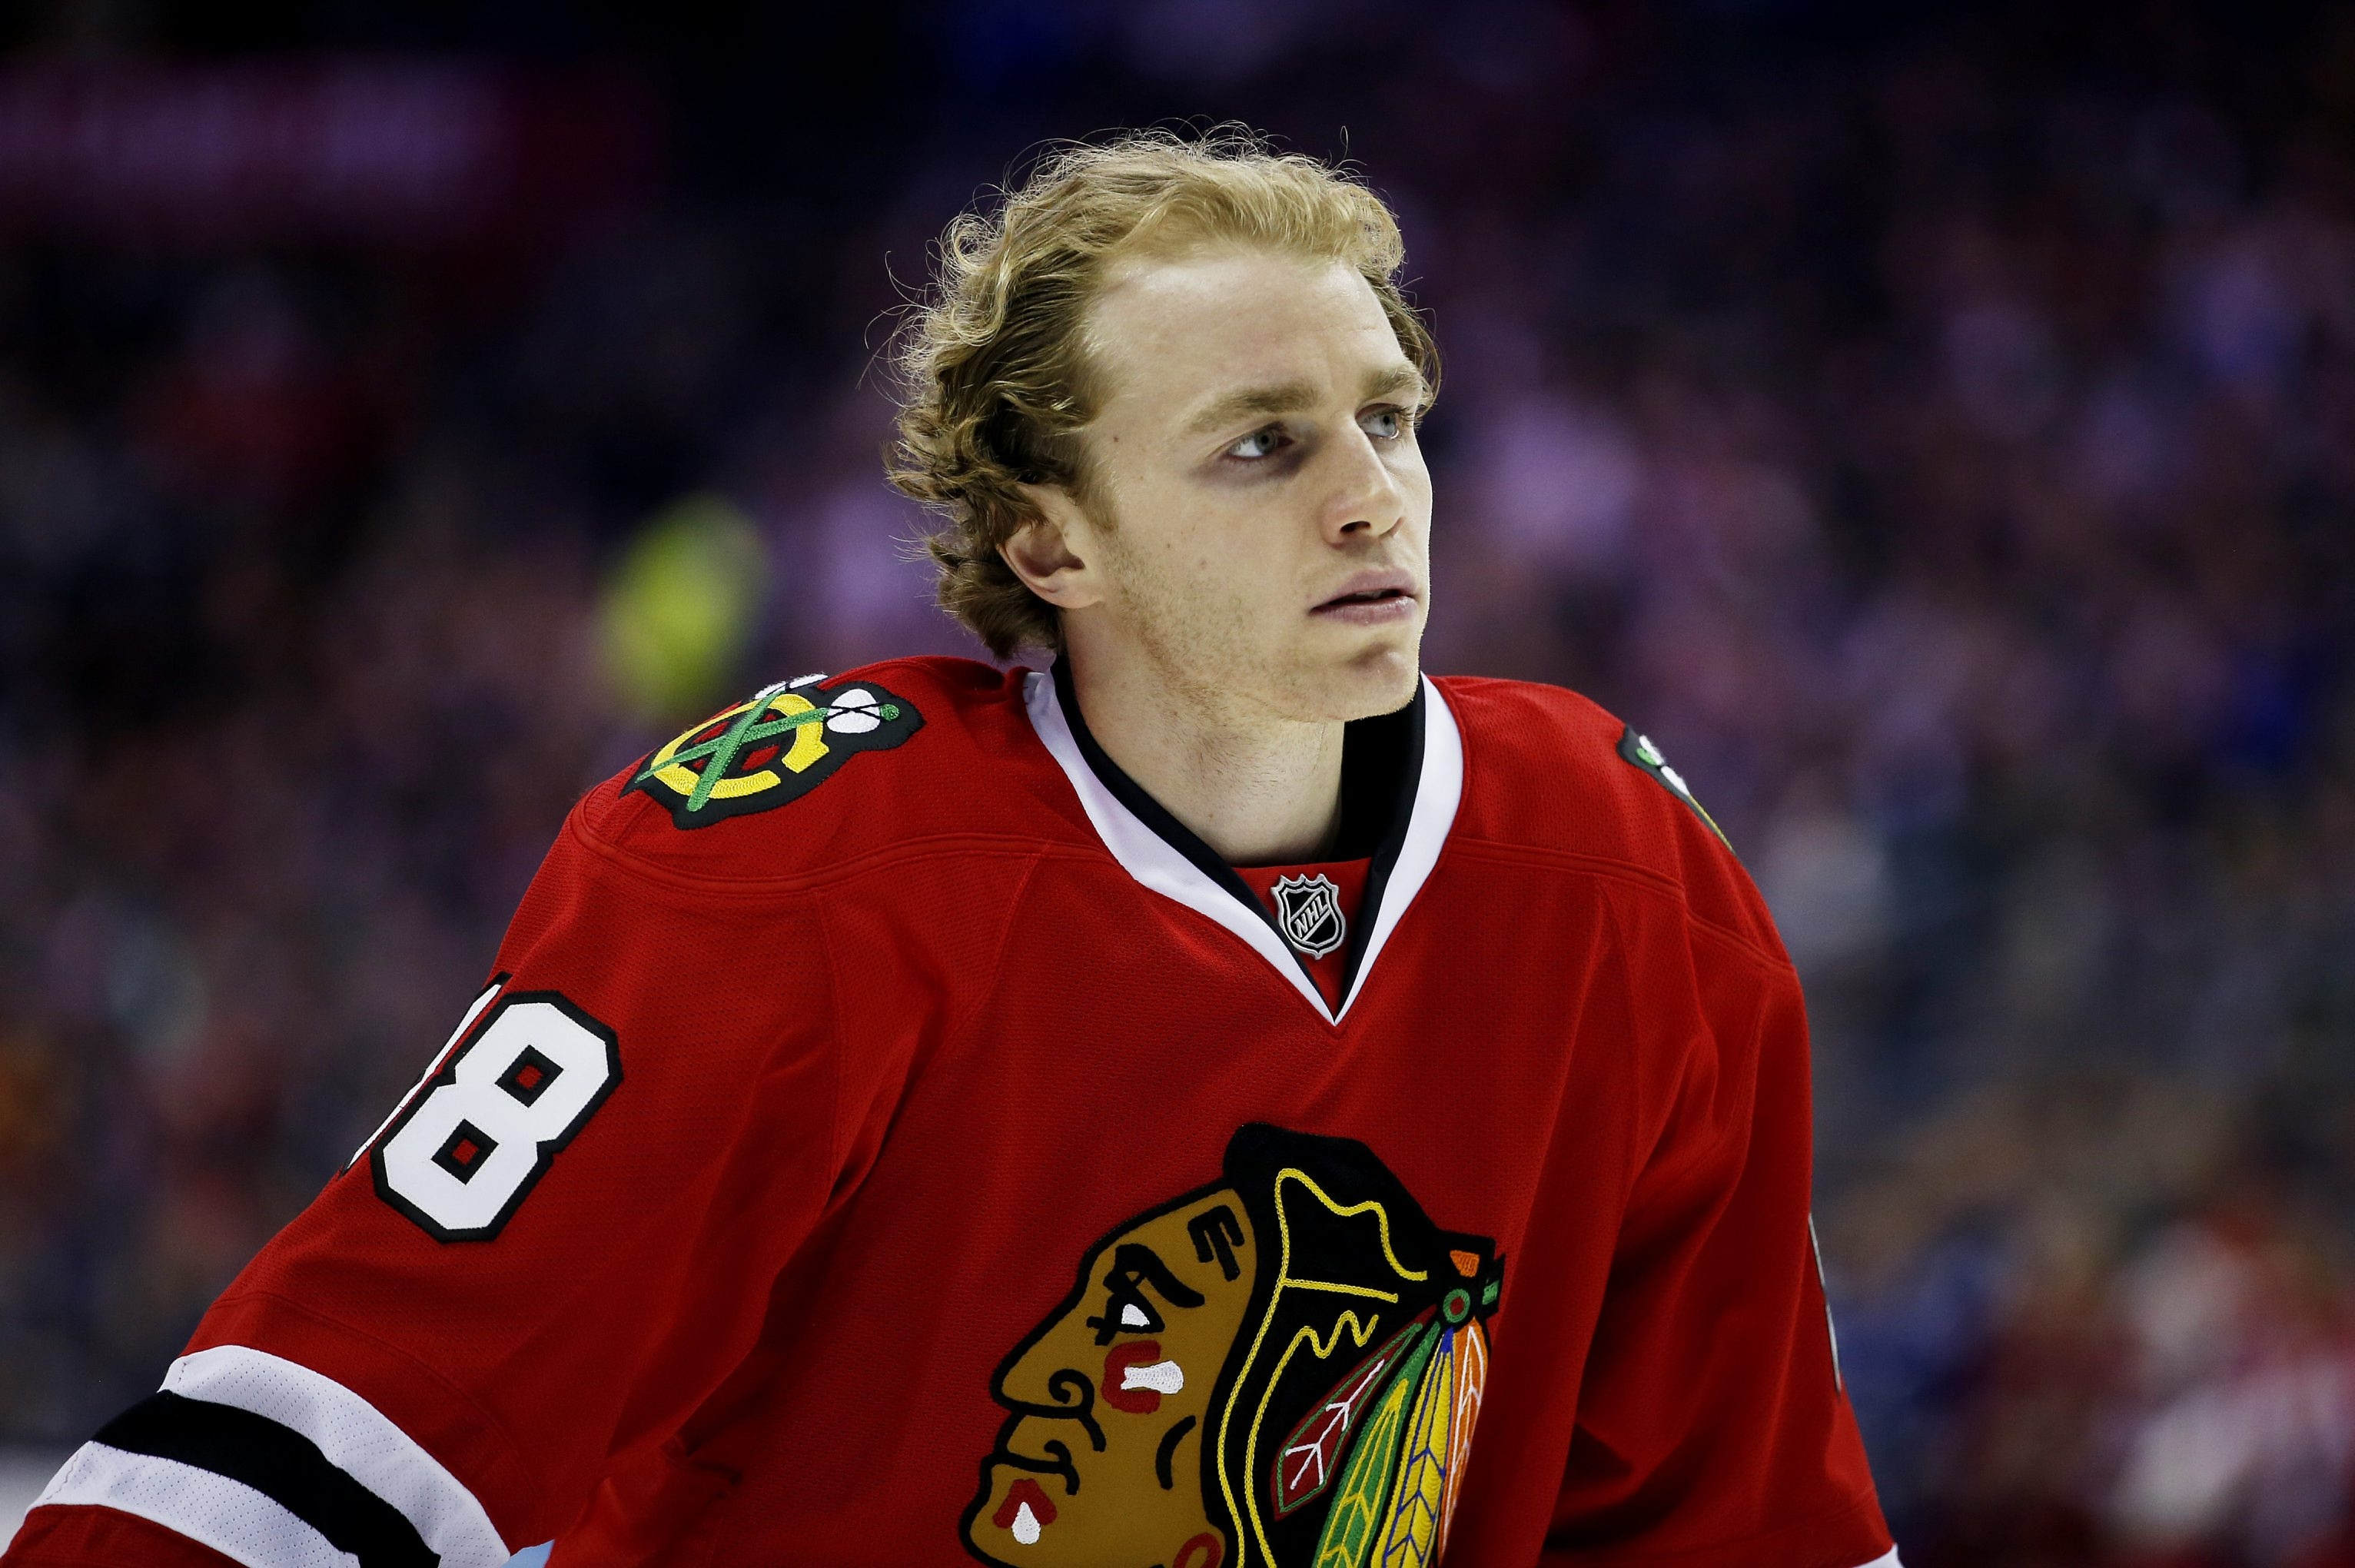 The NHL could bring about its own discipline against Patrick Kane even if no charges are filed against him.